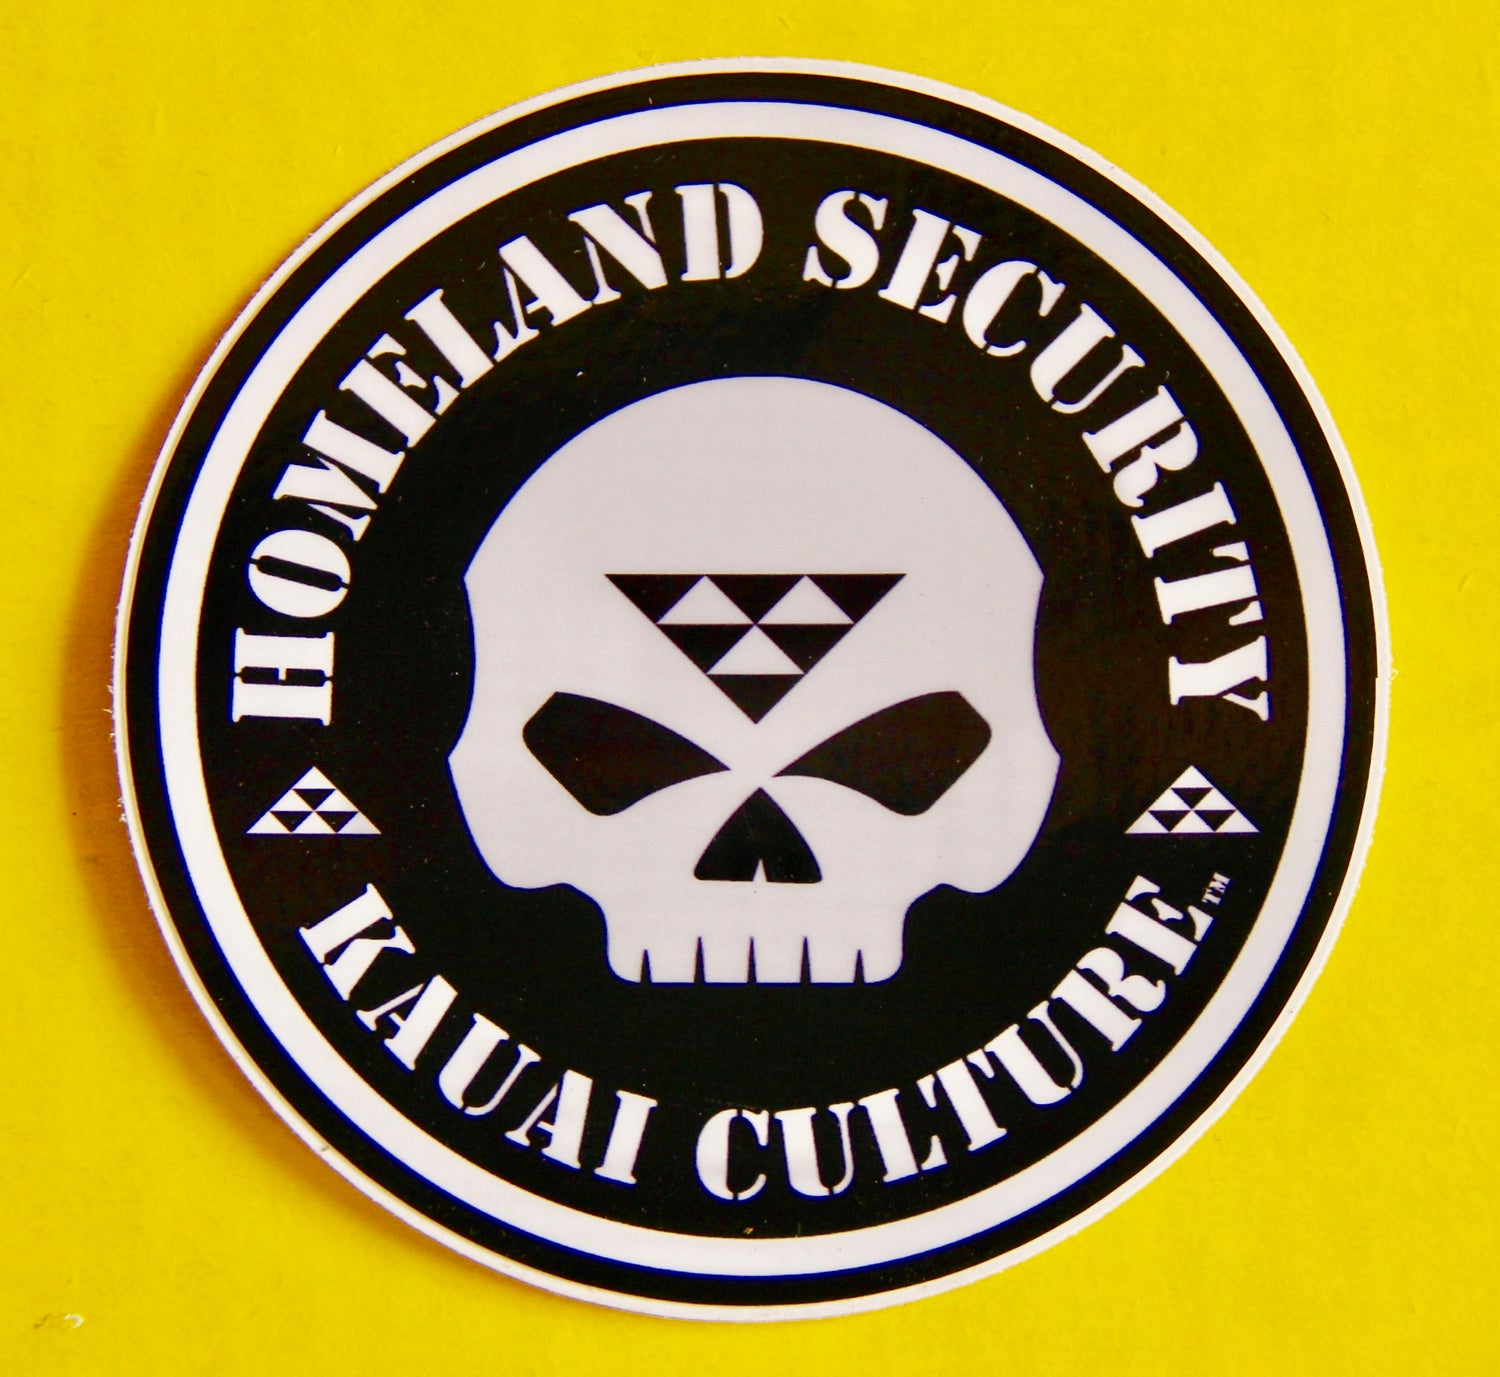 New sticka homeland security kauai culture image of new sticka homeland security buycottarizona